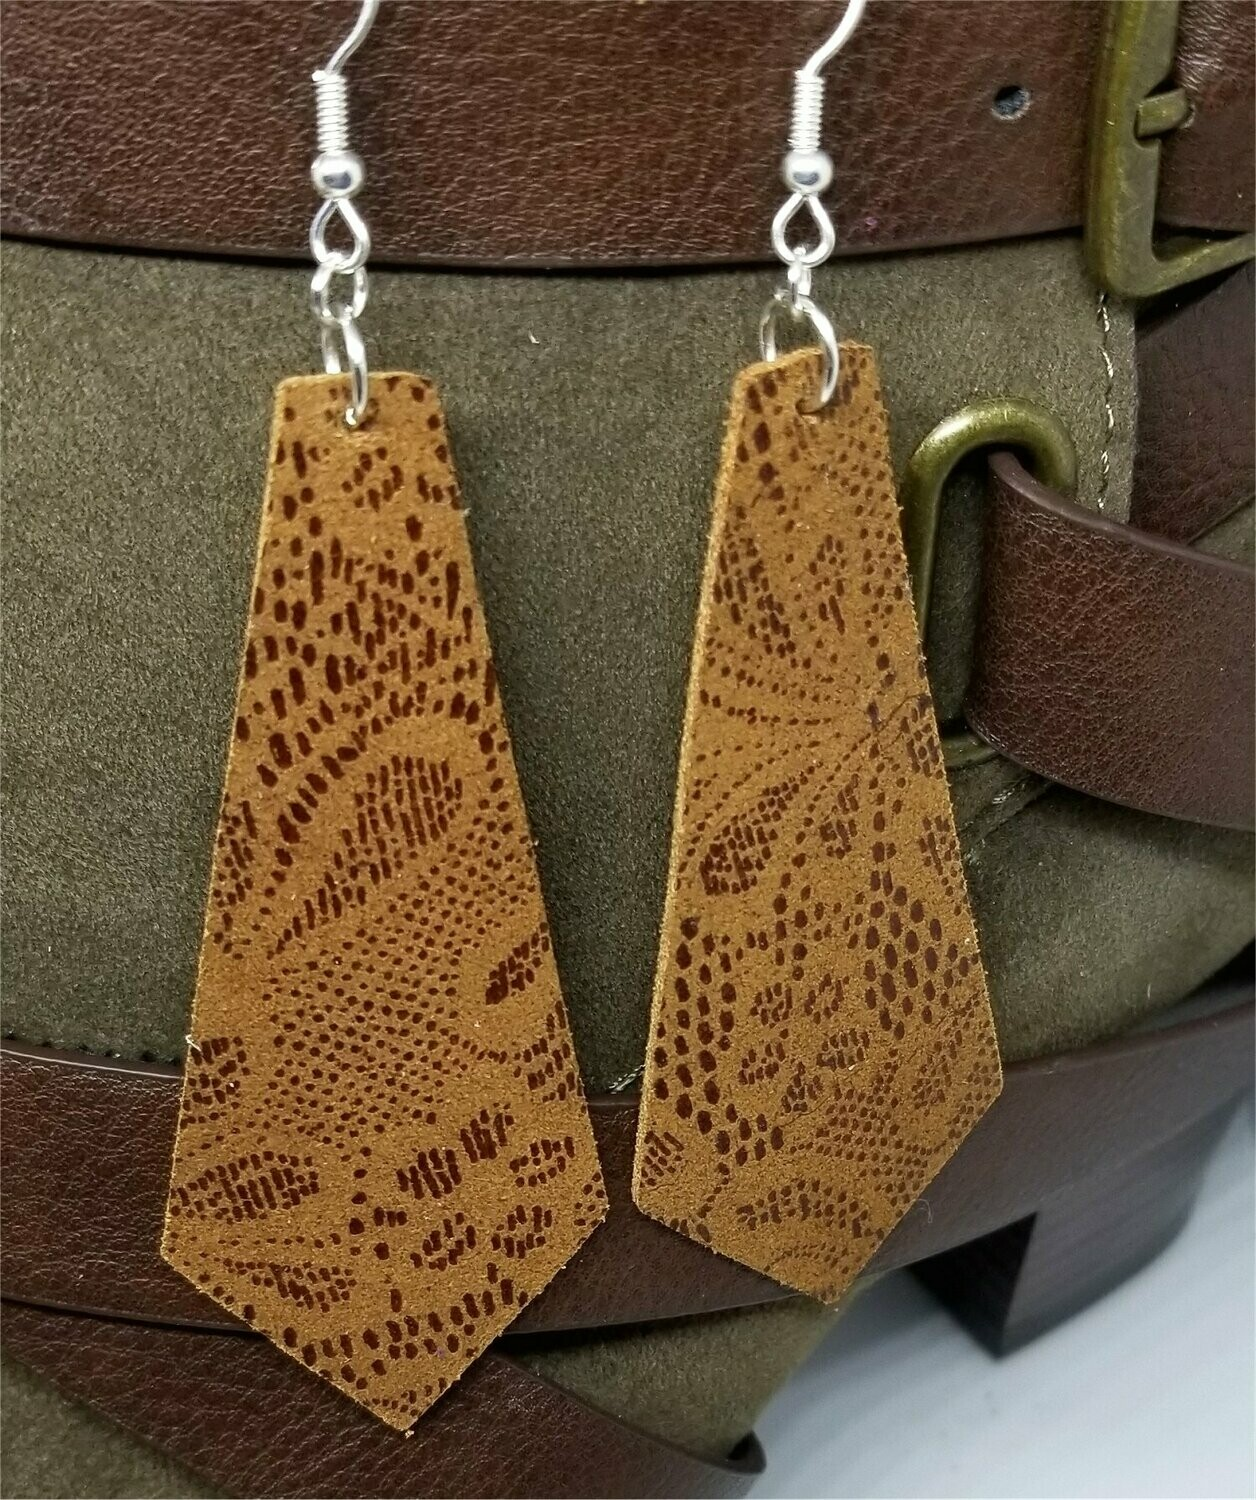 Tie Shaped Brown Real Leather Earrings with a Flowered Lace Pattern